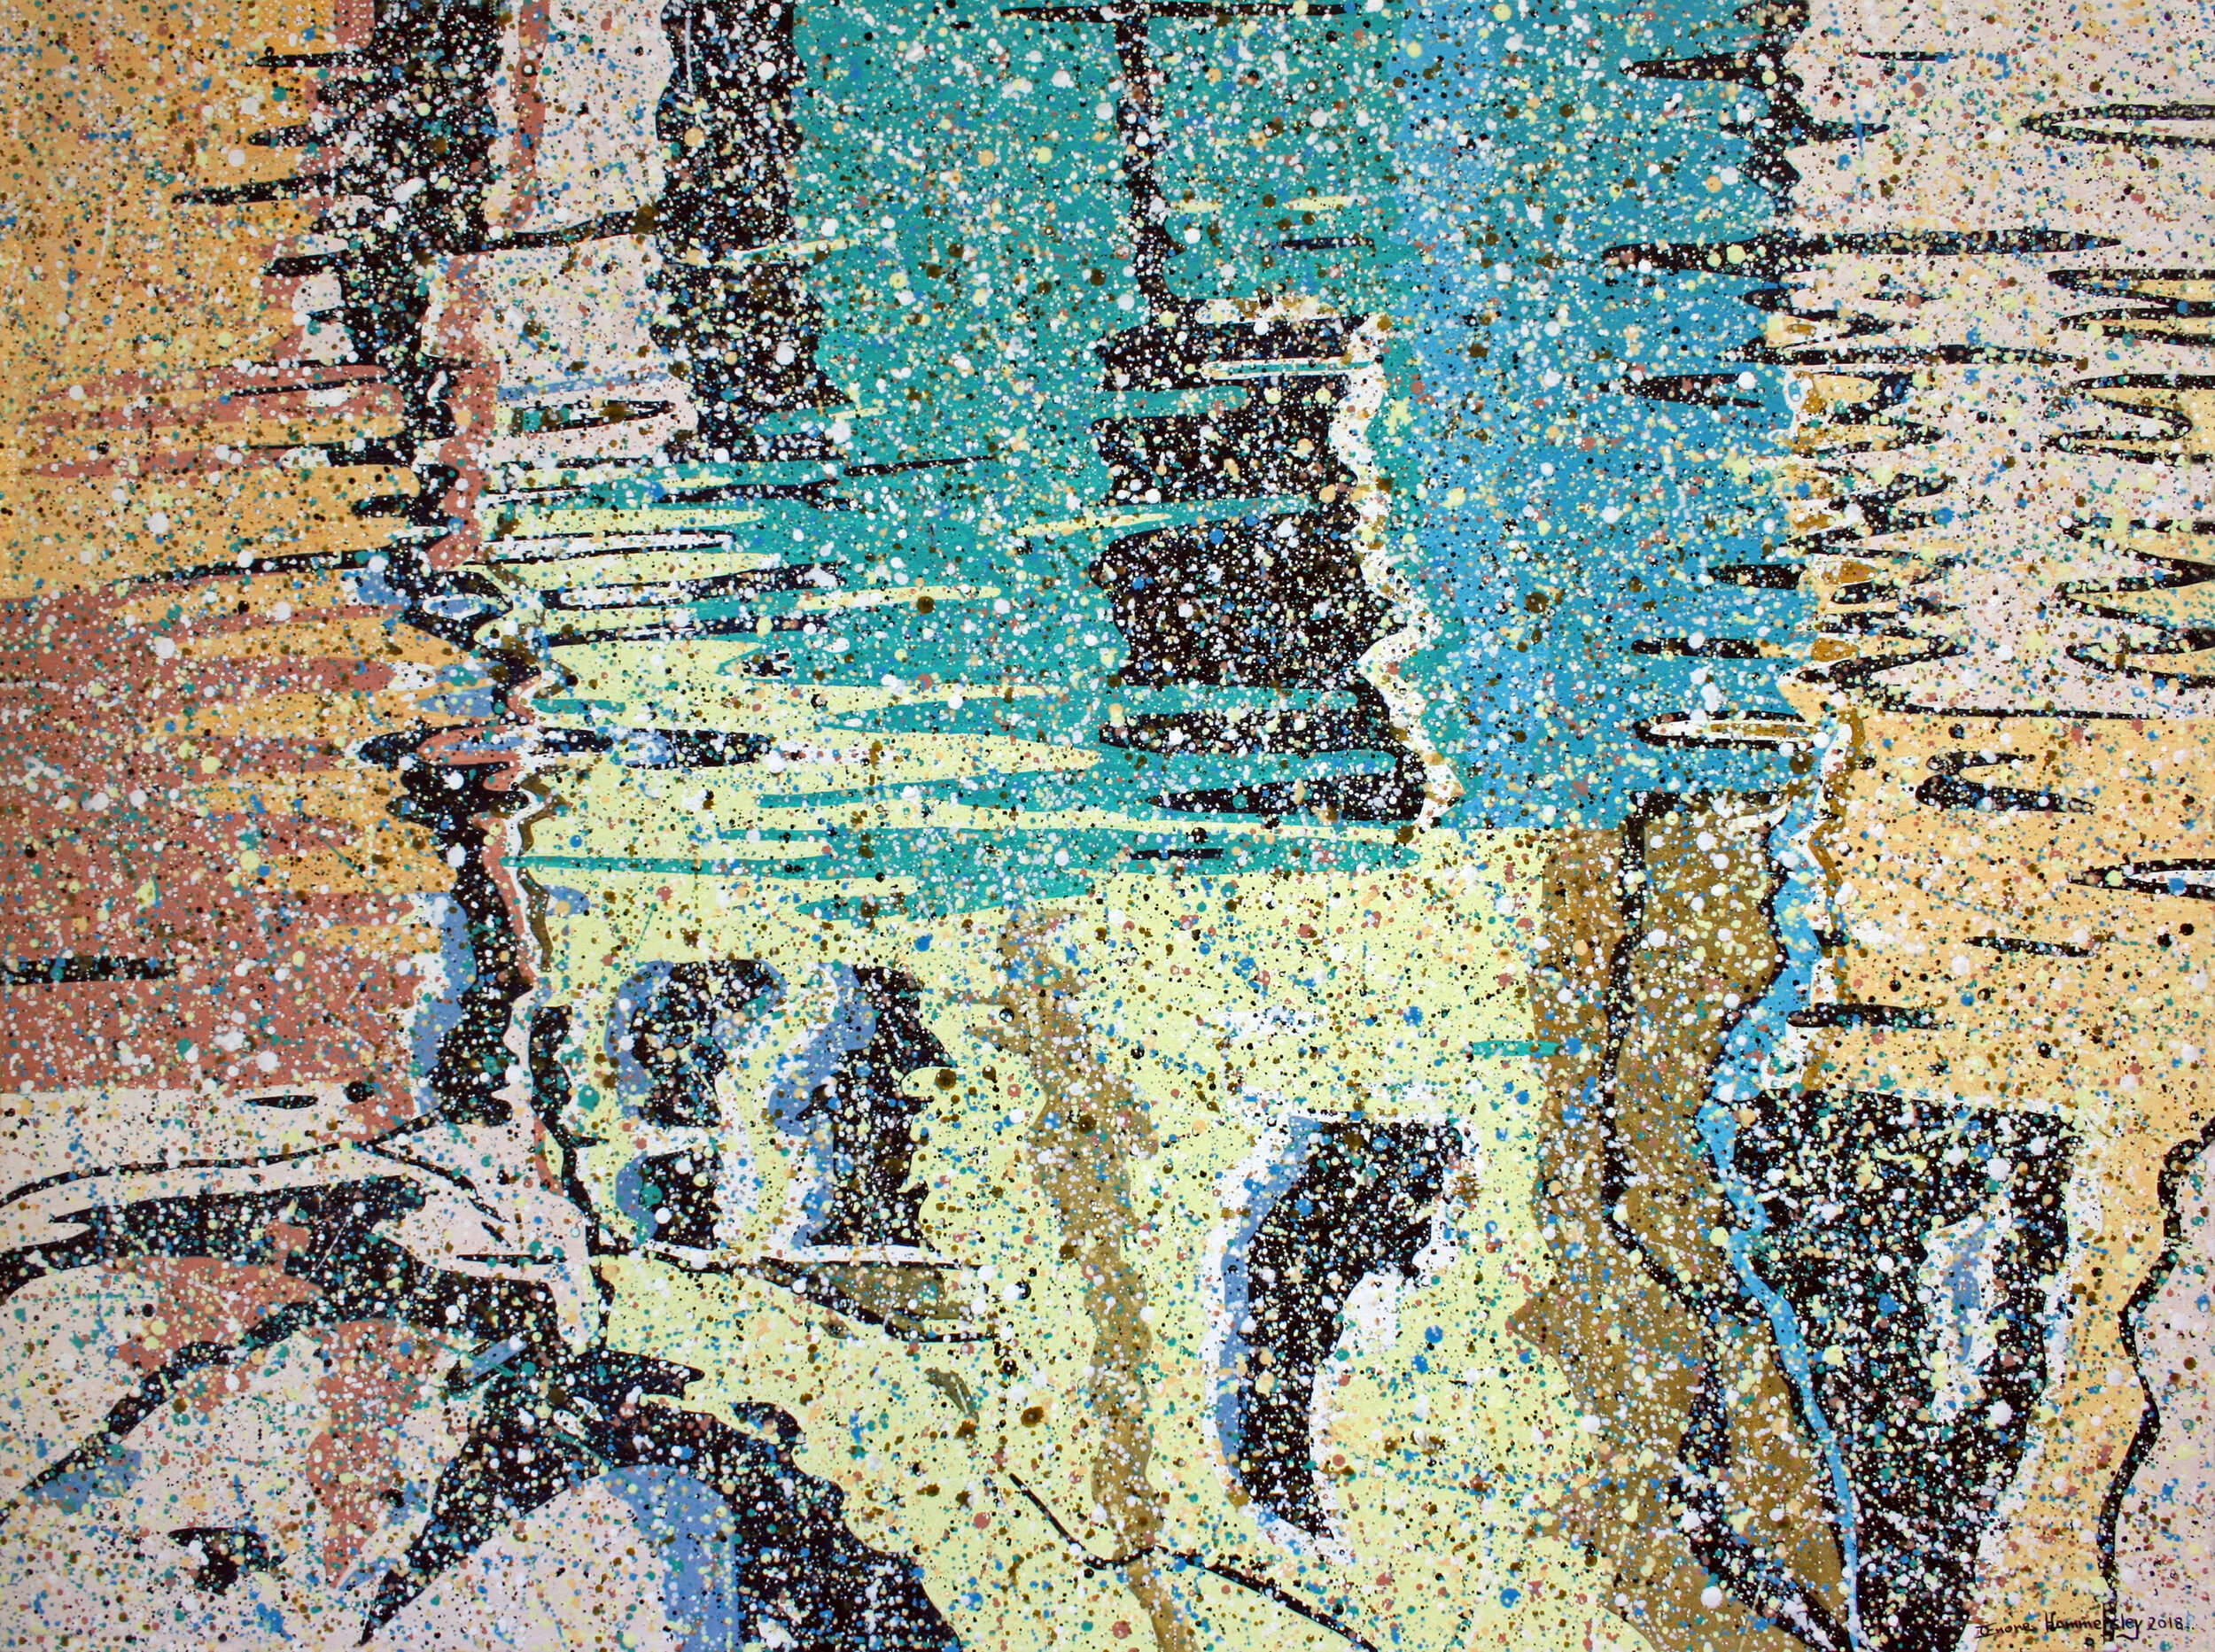 Water-based pointillistic abstraction painting with fragmented shapes and lines. yellow, green, red, black areas.